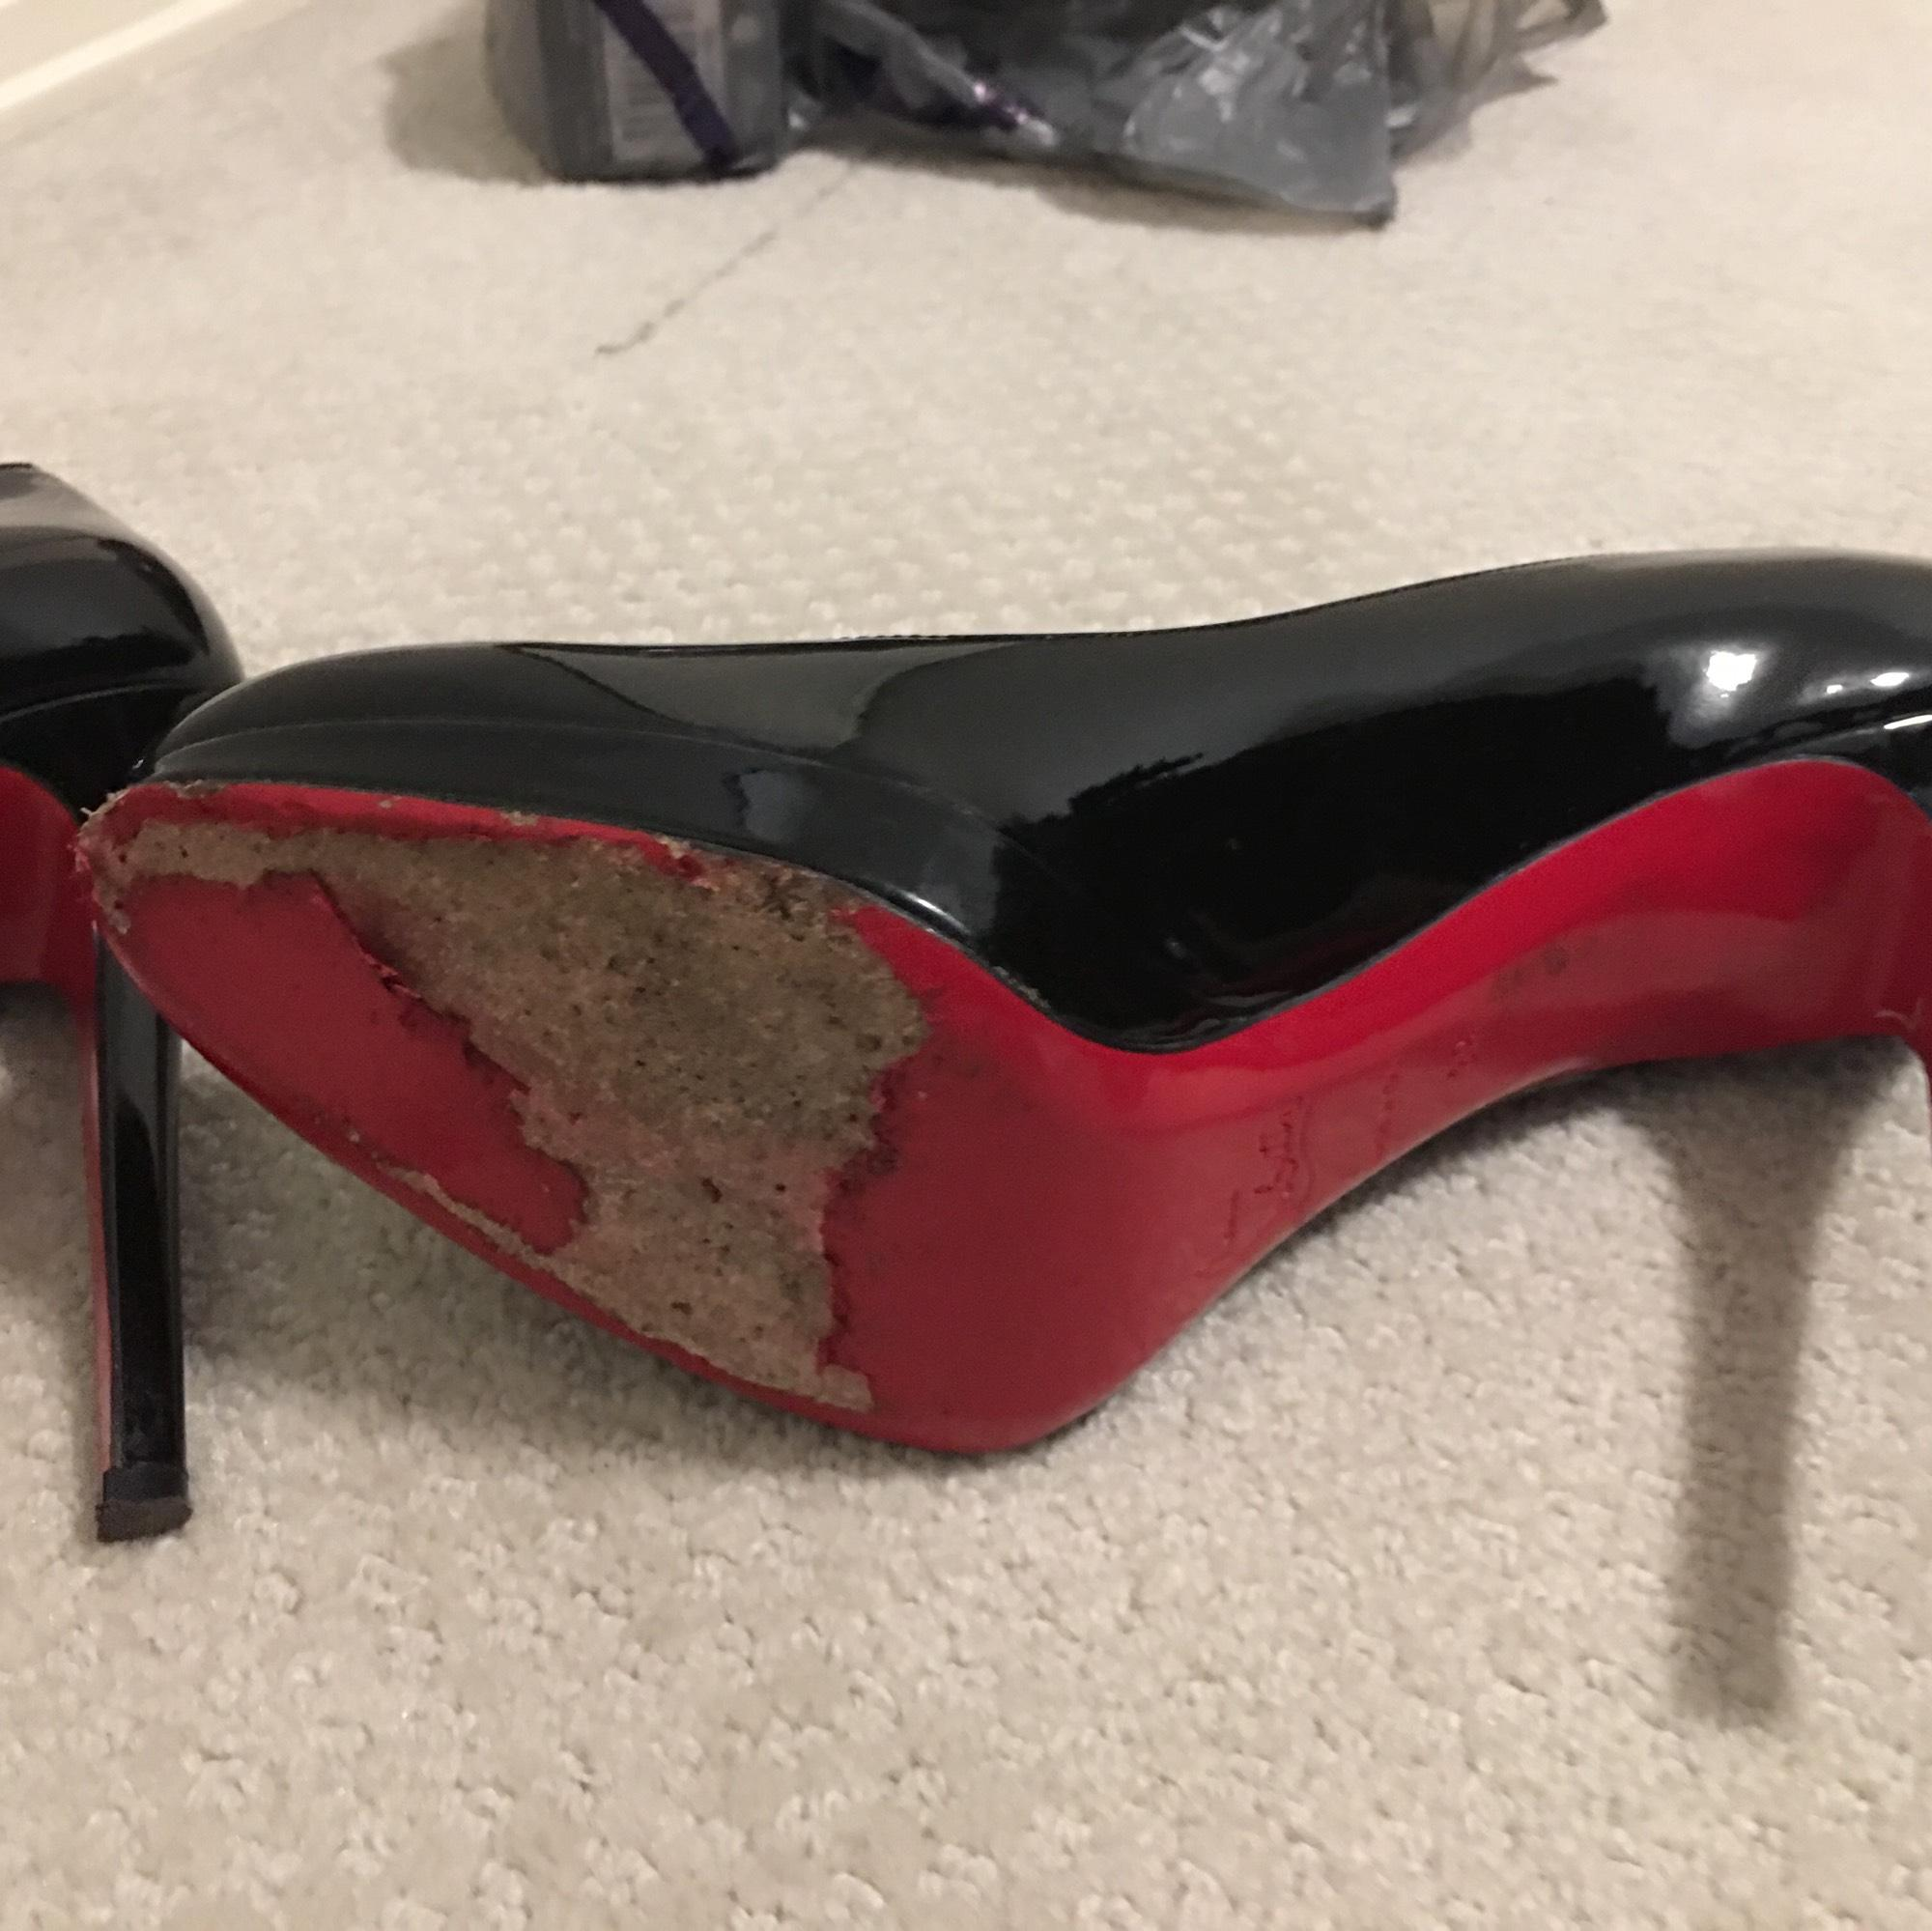 lv red bottoms